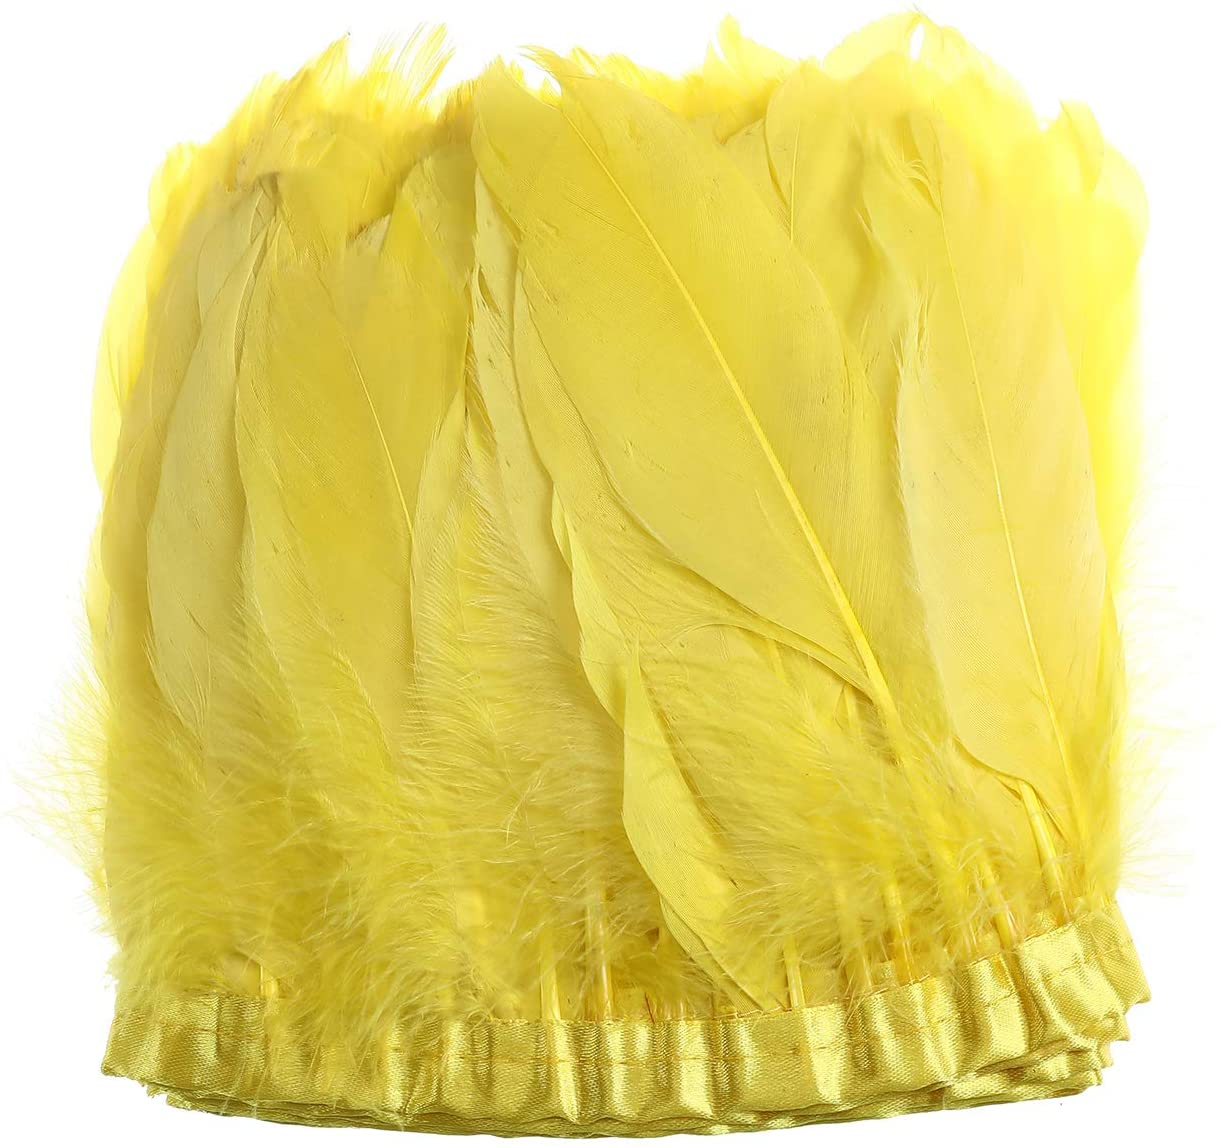 Erikord Duck Goose Feather Fringe Trim for Sewing Crafts Costumes Decoration 6-8 inches Width Pack of 2 Yards(Yellow)